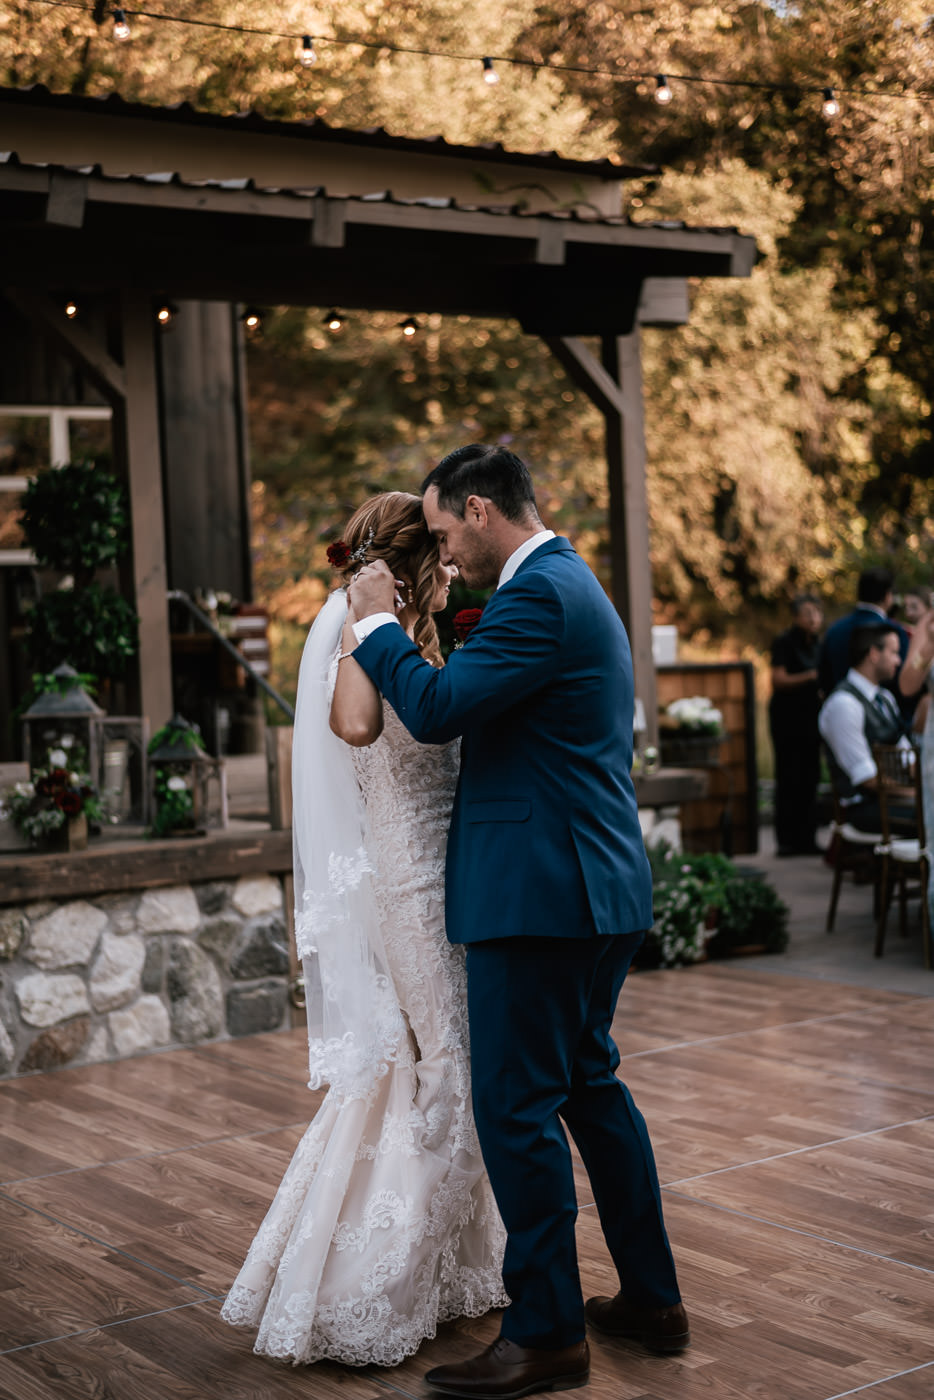 First dance at this rustic wedding at The Homestead.